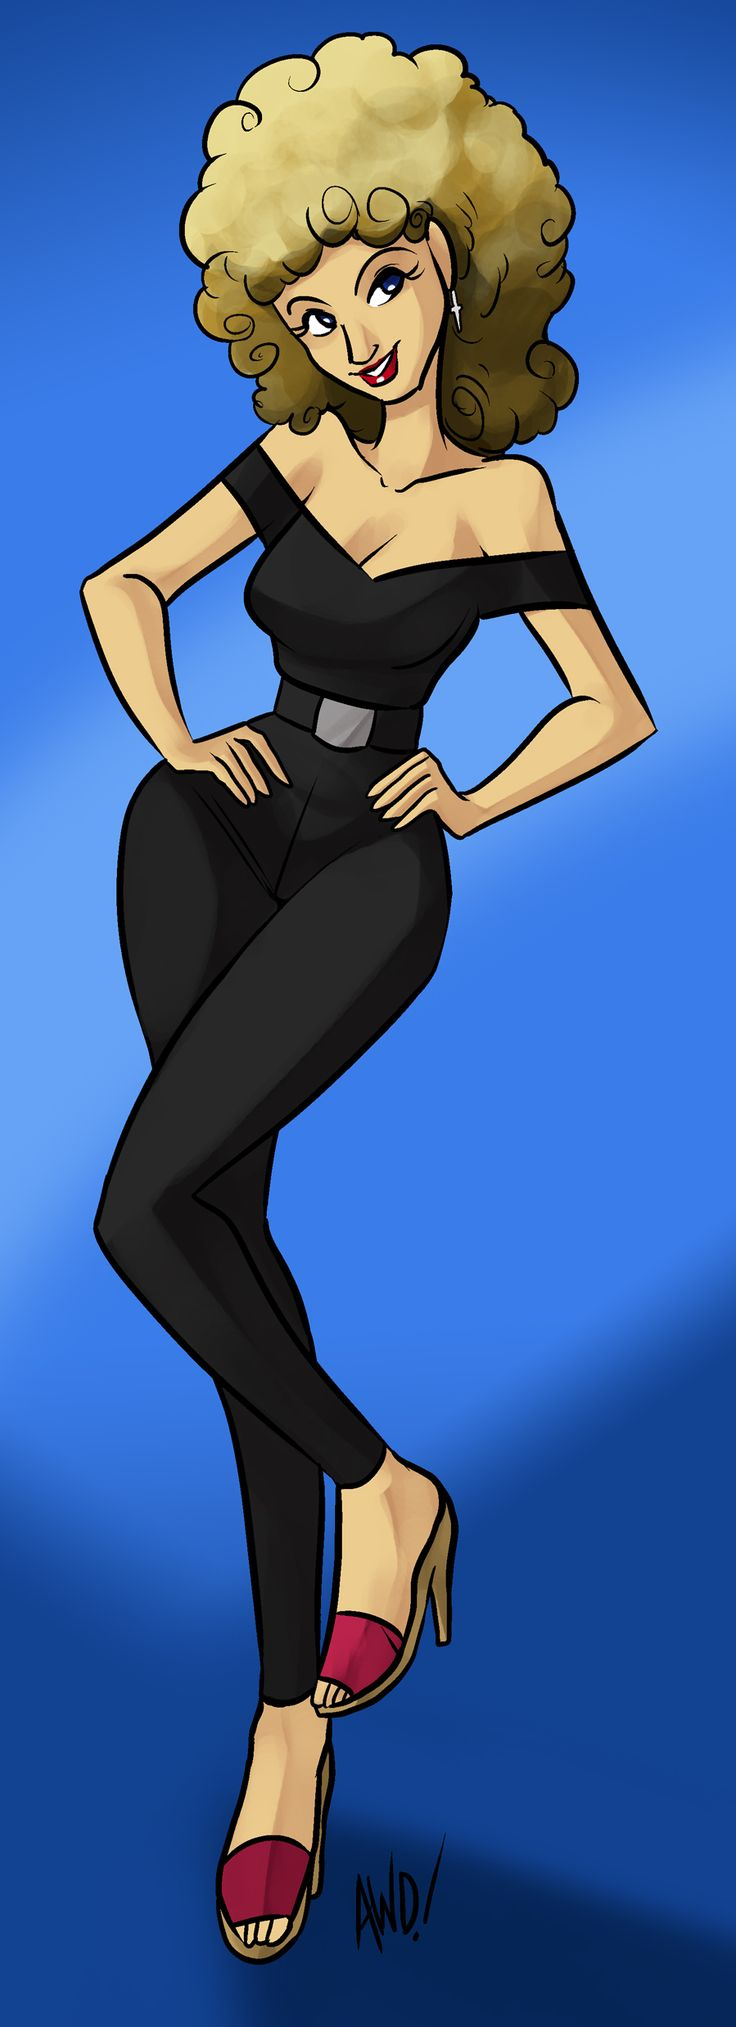 Sandy by way of Channel Awesome, courtesy of their go-to cartoonist and intro animator Andrew Dickman.